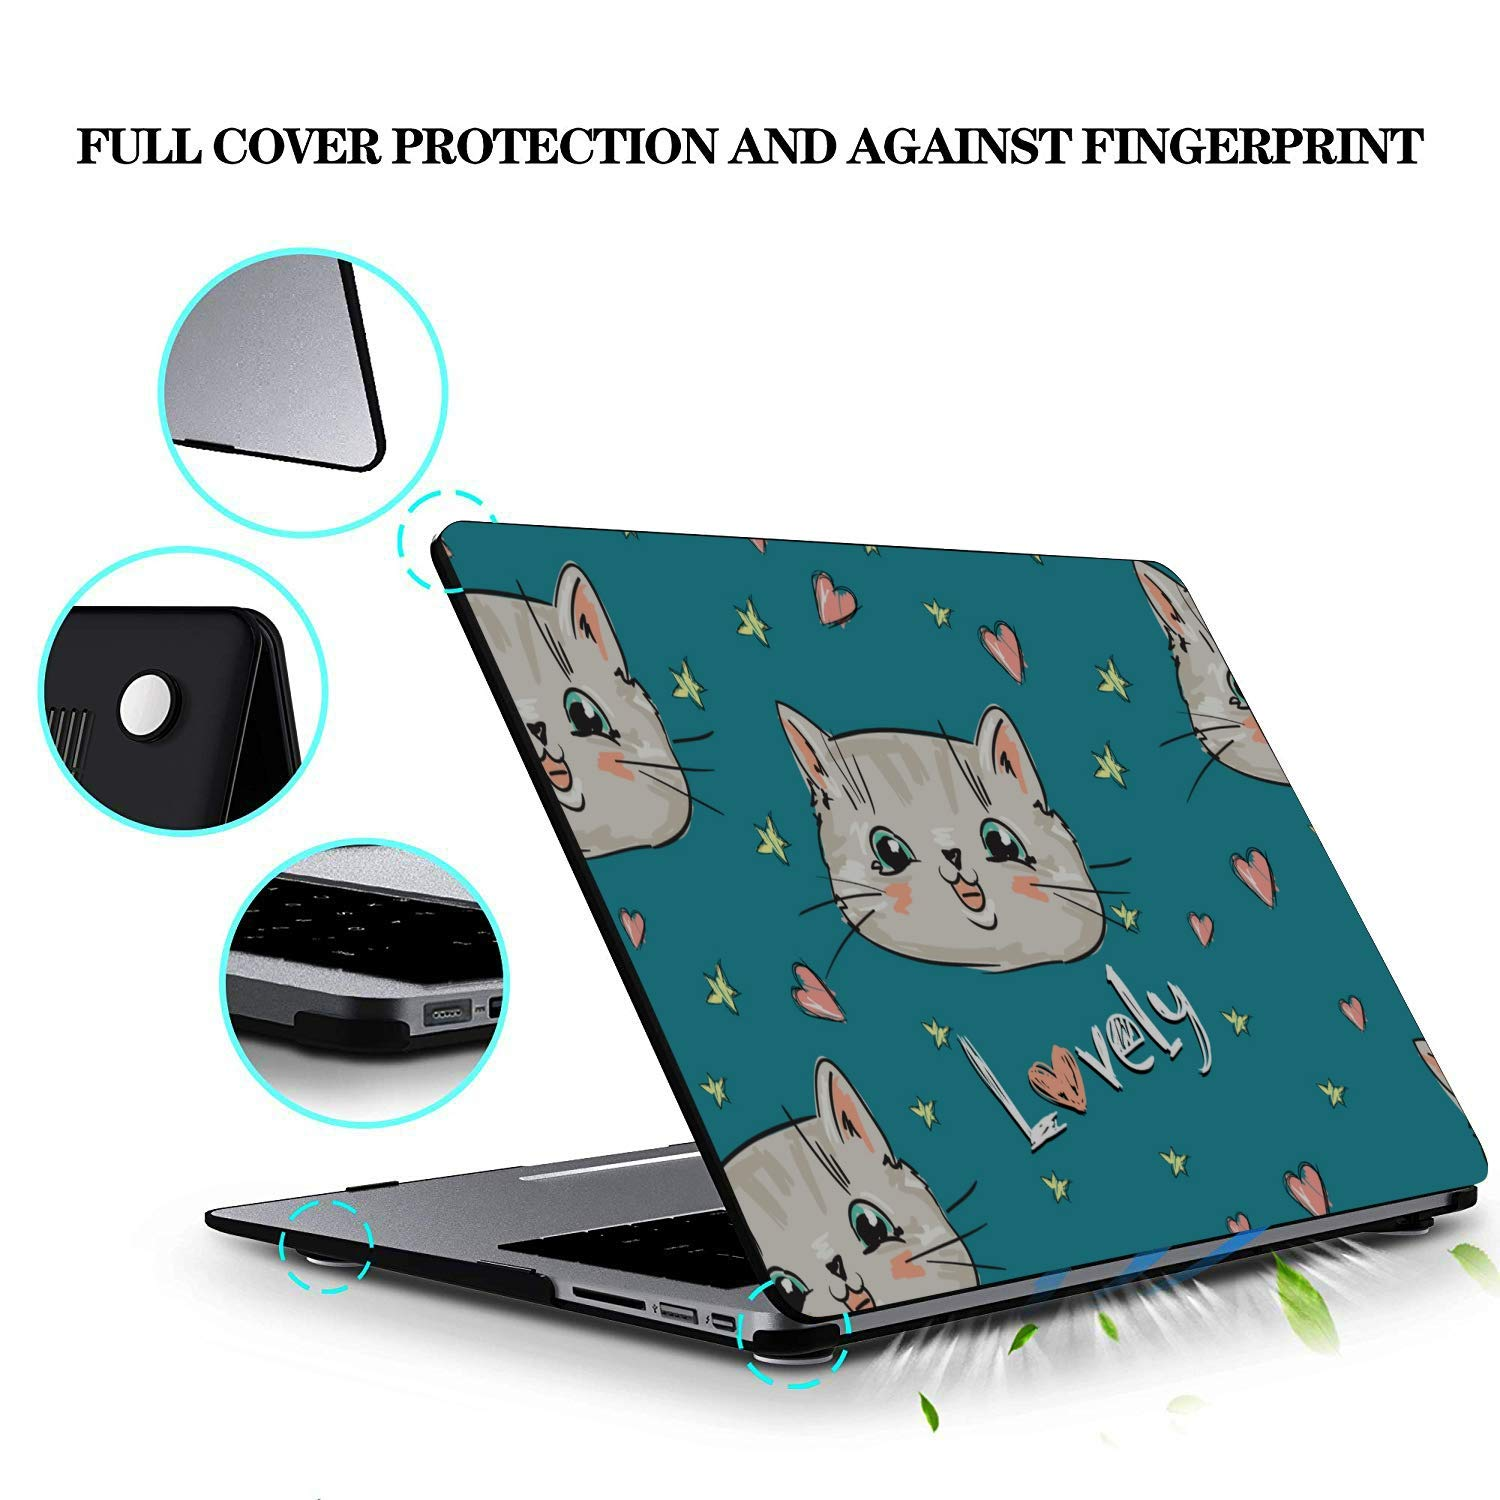 Laptop Protector Smart Well-Behaved Cute Cat Animal Pet Plastic Hard Shell Compatible Mac Air 11 Pro 13 15 Laptop Case 13 Inch Protection for MacBook 2016-2019 Version